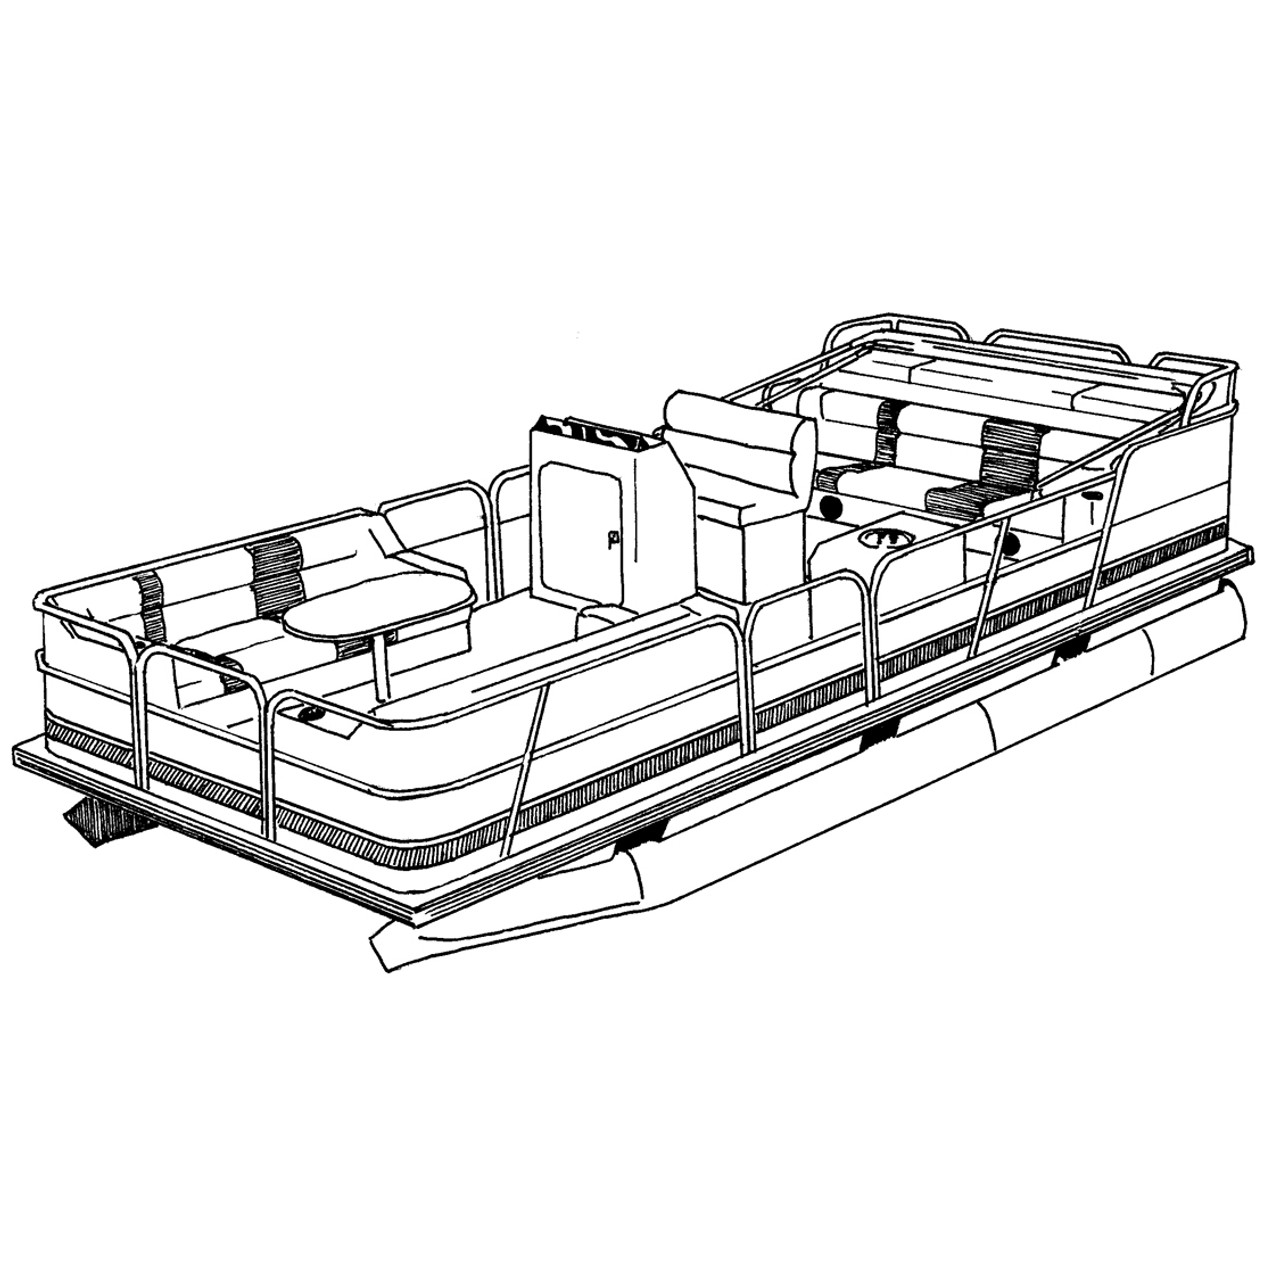 hight resolution of cover fits pontoon with bimini top and rails that fully enclose deck